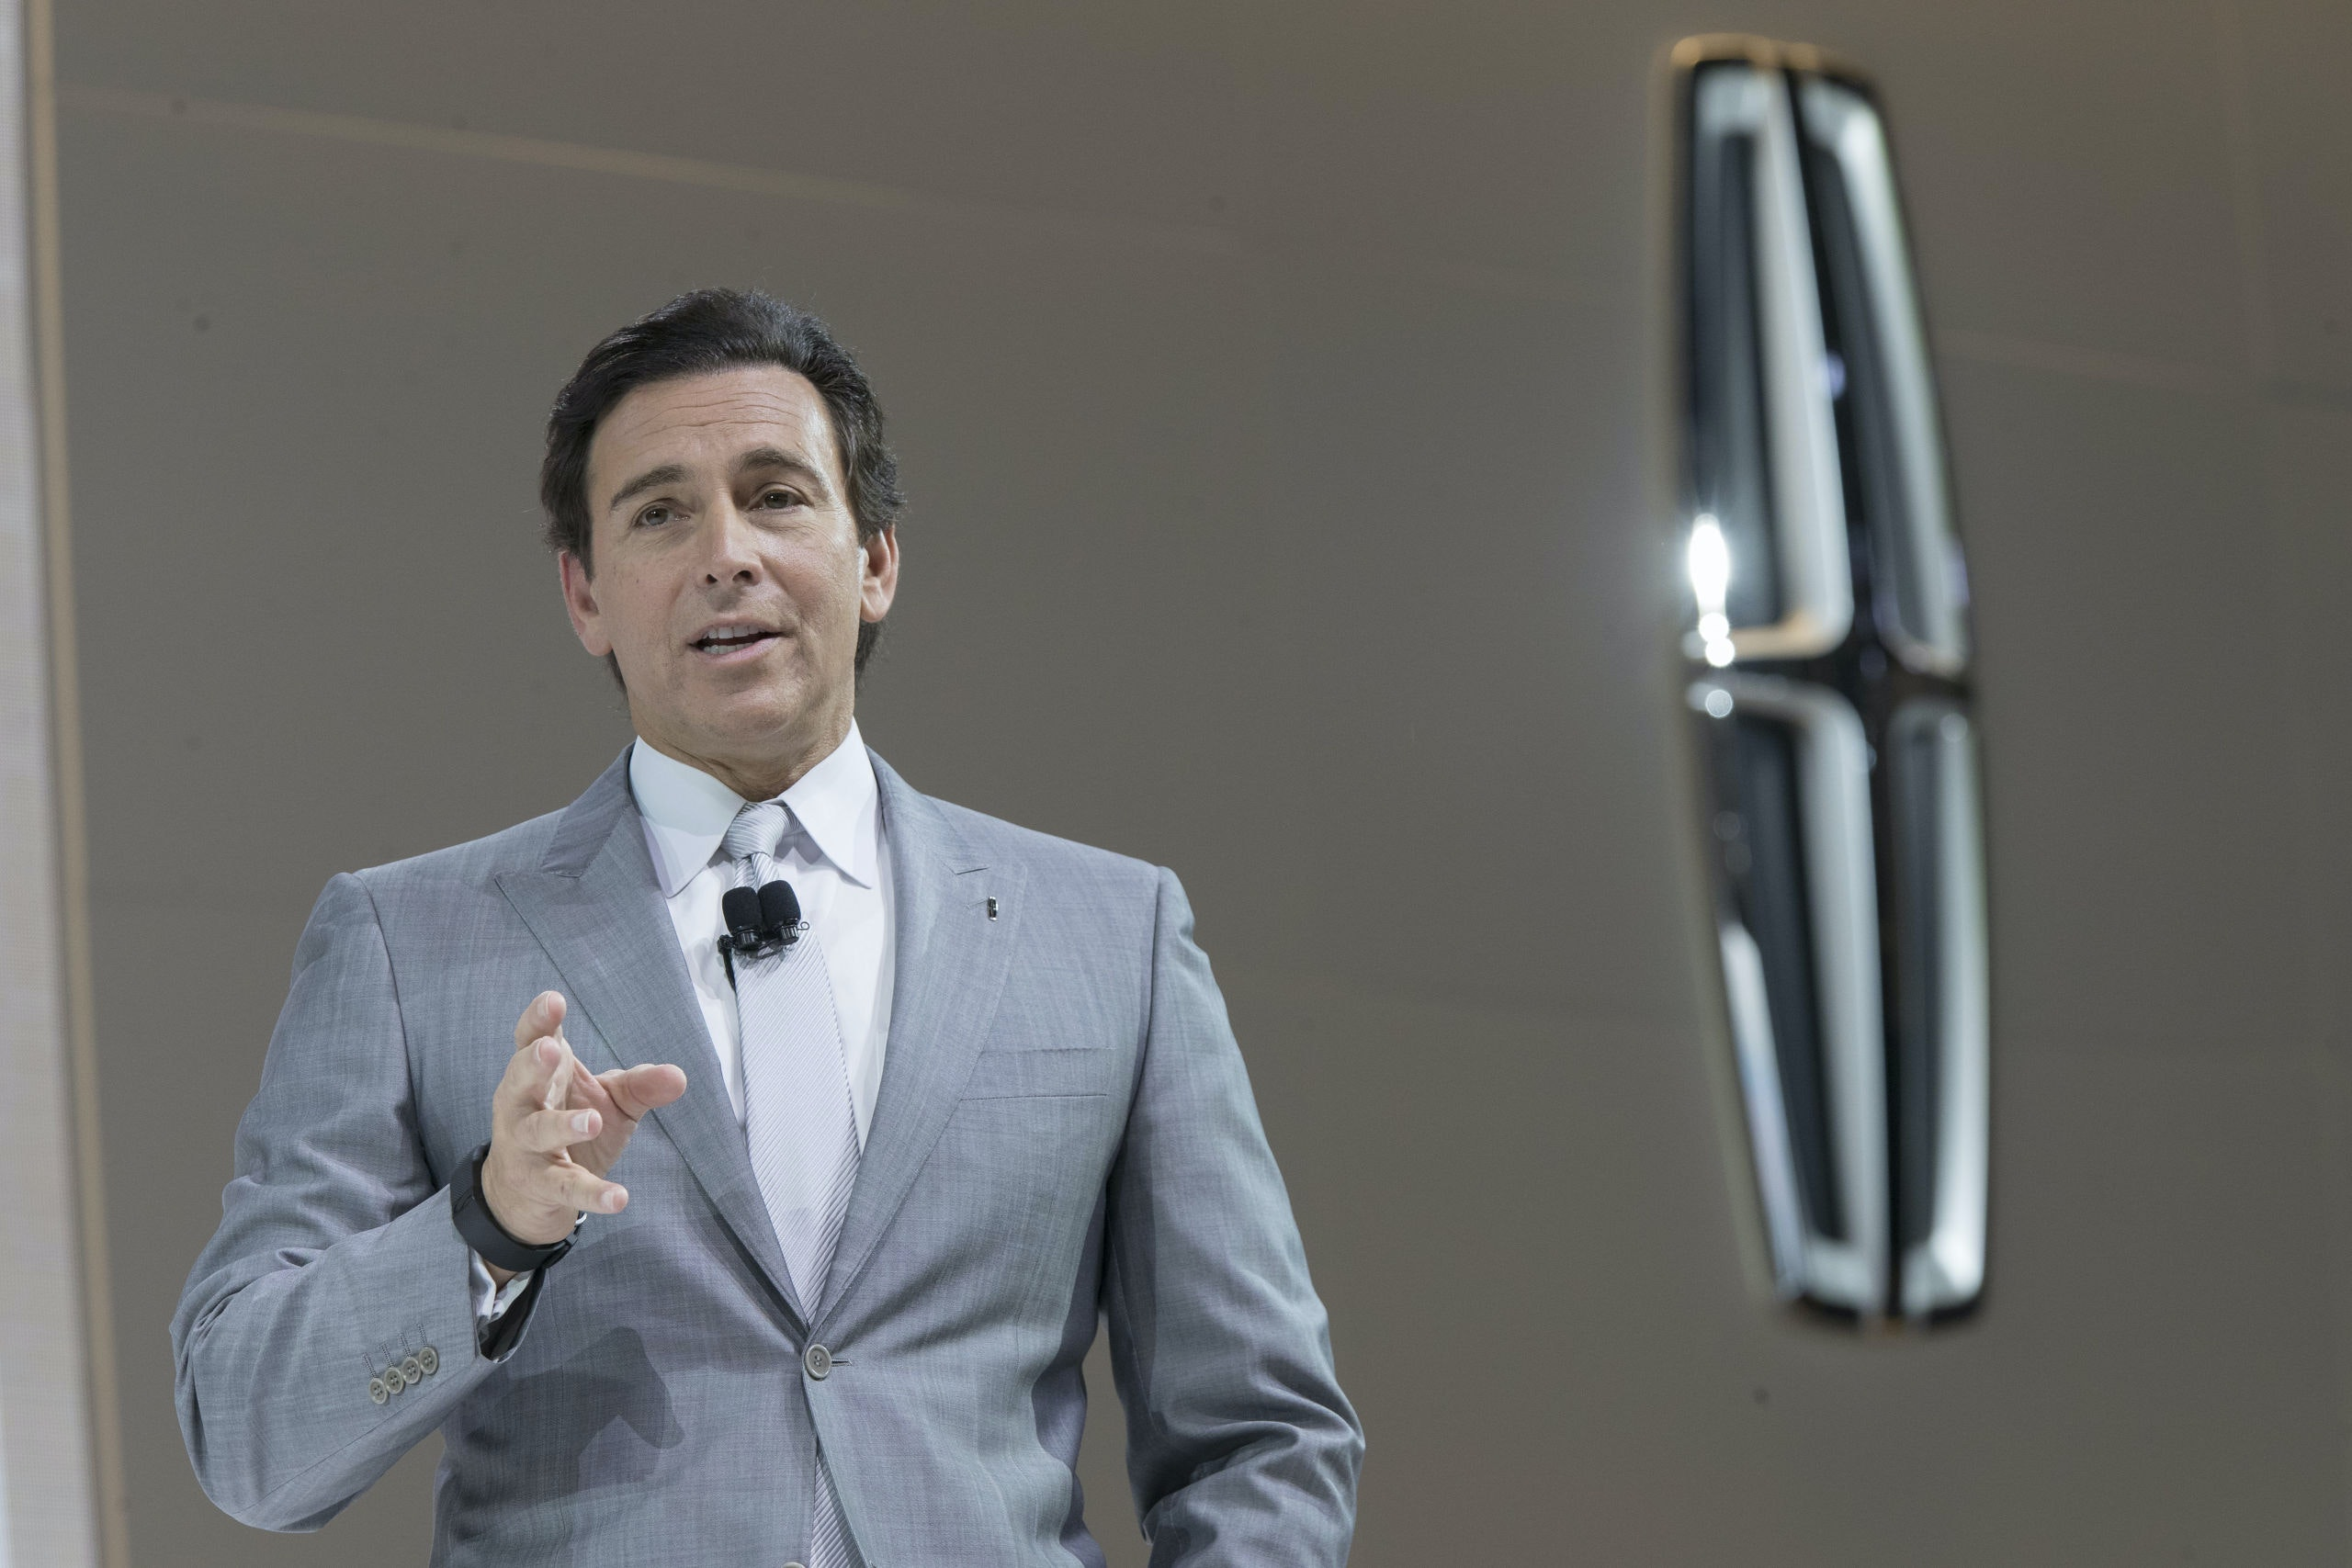 Ford Motor Co. President and CEO Mark Fields speaks during a media preview of the 2018 Lincoln Navigator at the New York International Auto Show, at the Jacob Javits Center in New York, Wednesday, April 12, 2017. (AP Photo/Mary Altaffer)